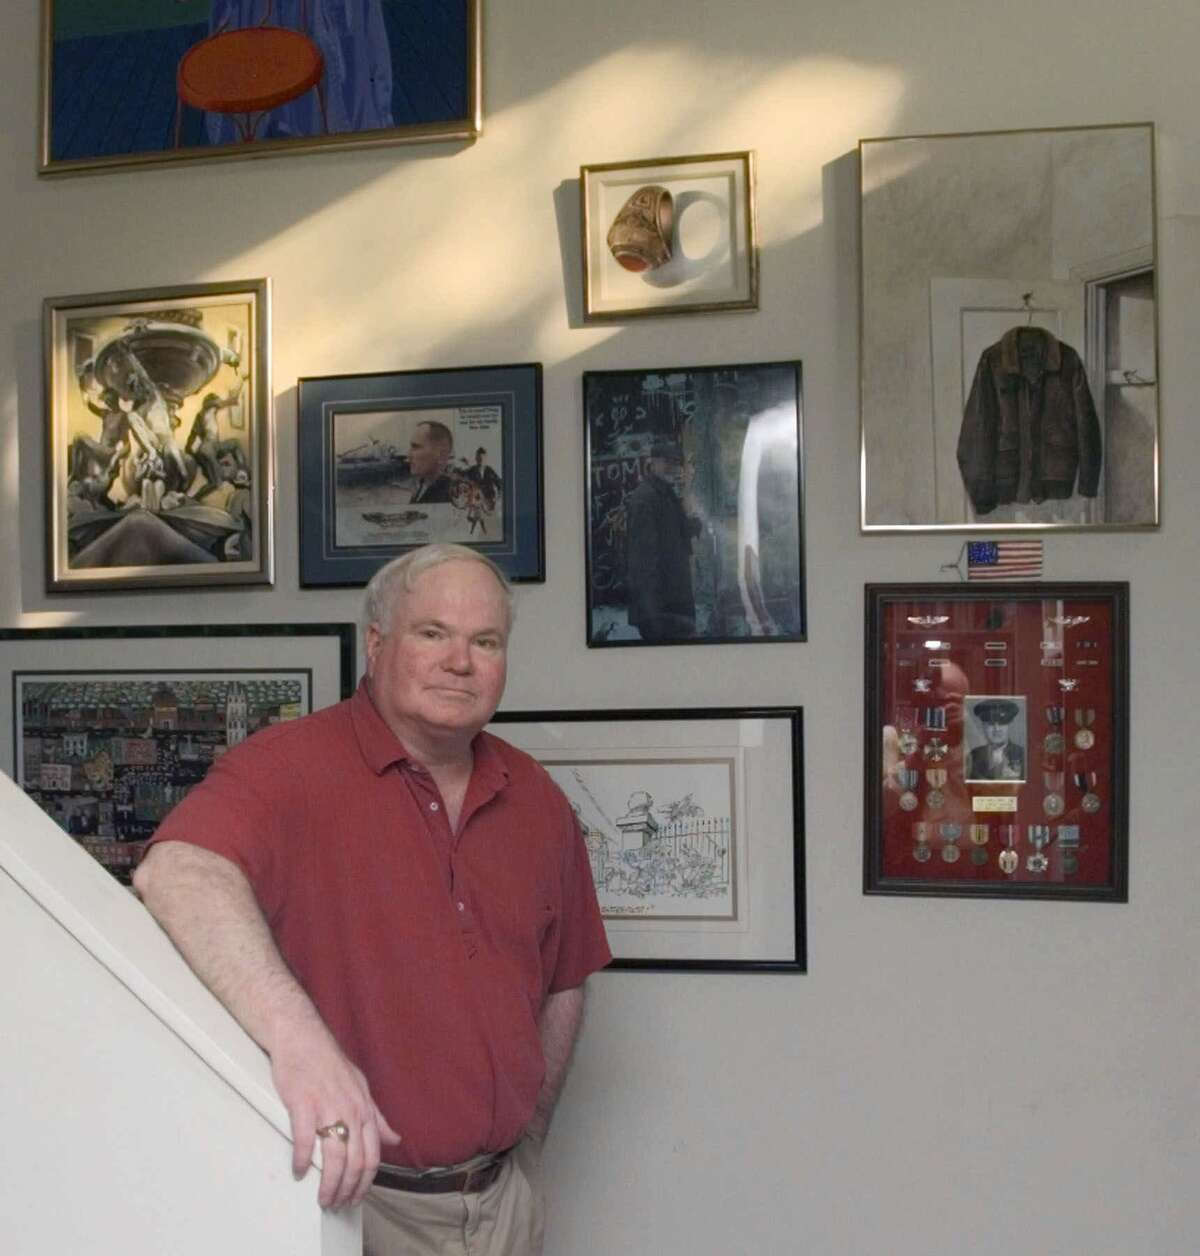 """Novelist Pat Conroy poses by posters and momentos of his late father, a Marine colonel and the subject of Conroy's autobiographical novel """"The Great Santini,"""" in his home on Fripp Island, S.C. on Nov. 3, 2000."""